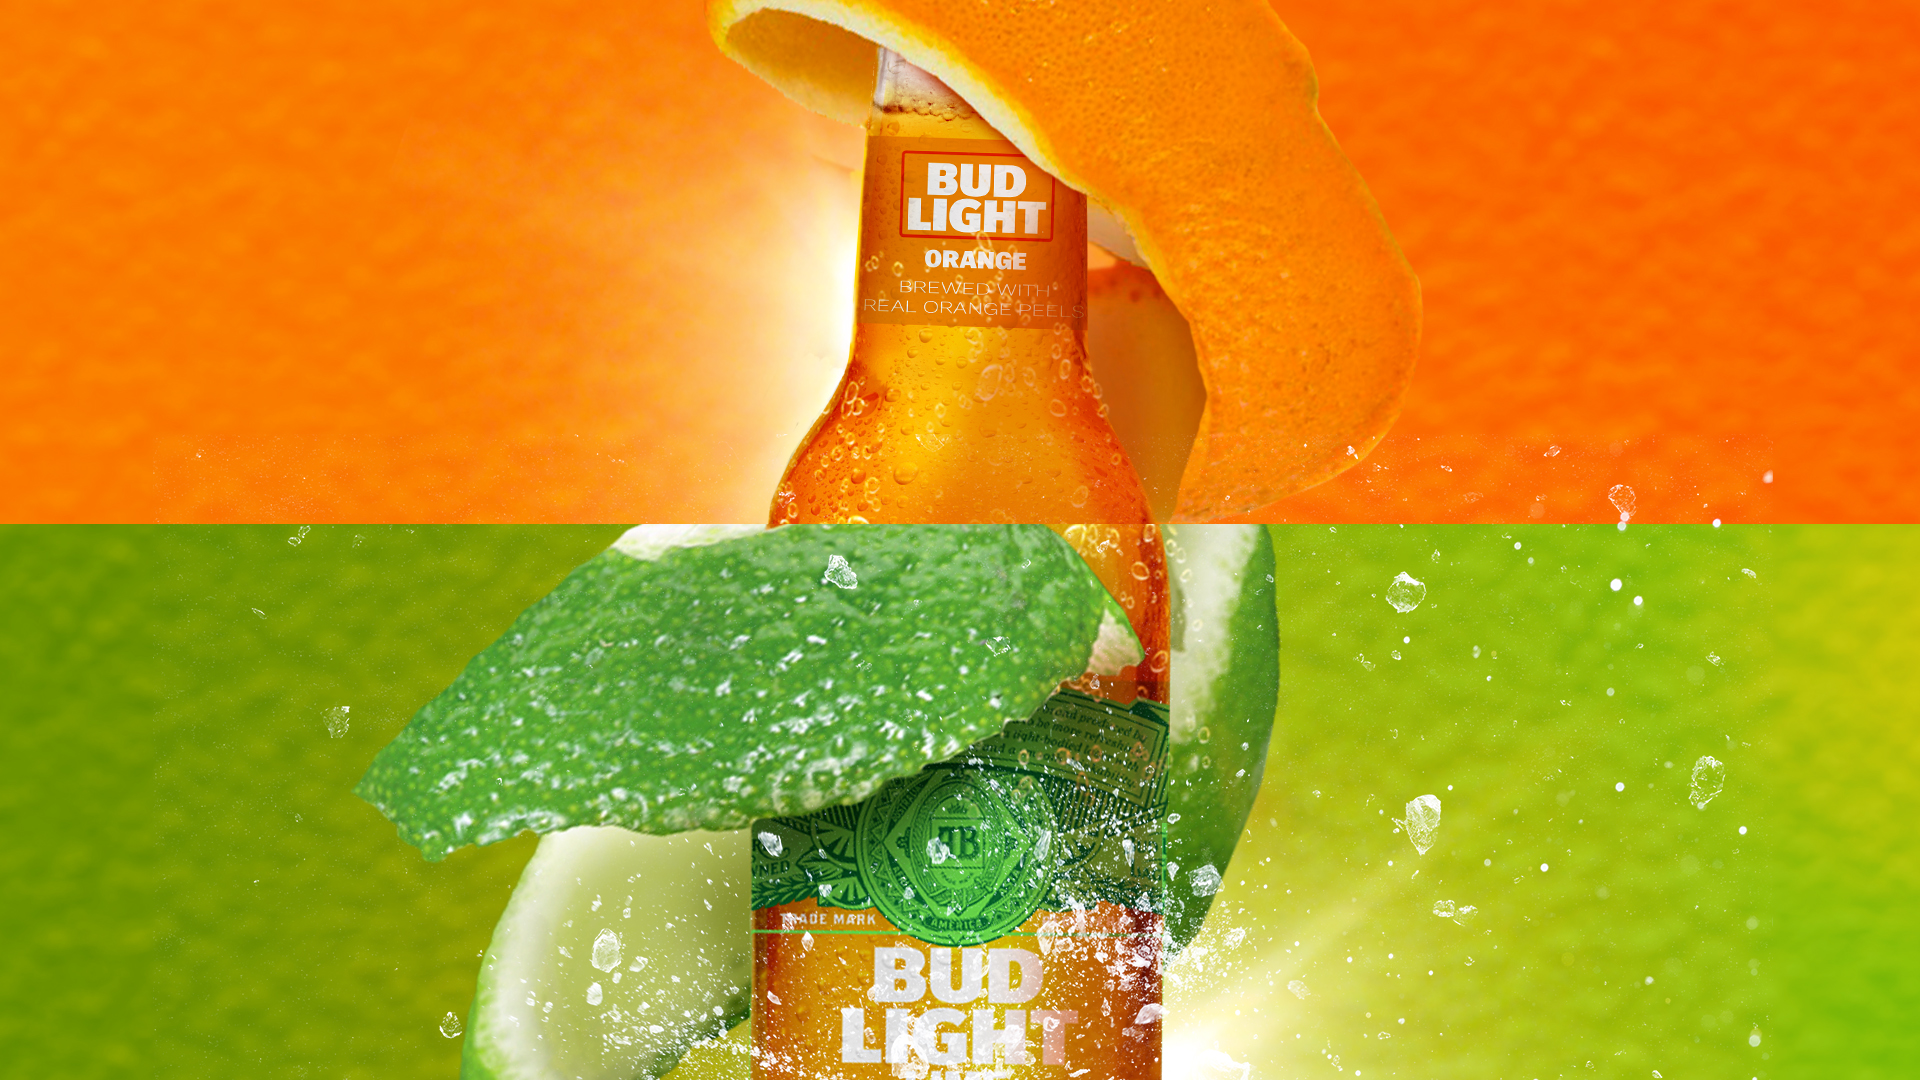 budlight_split_v07_cl.jpg